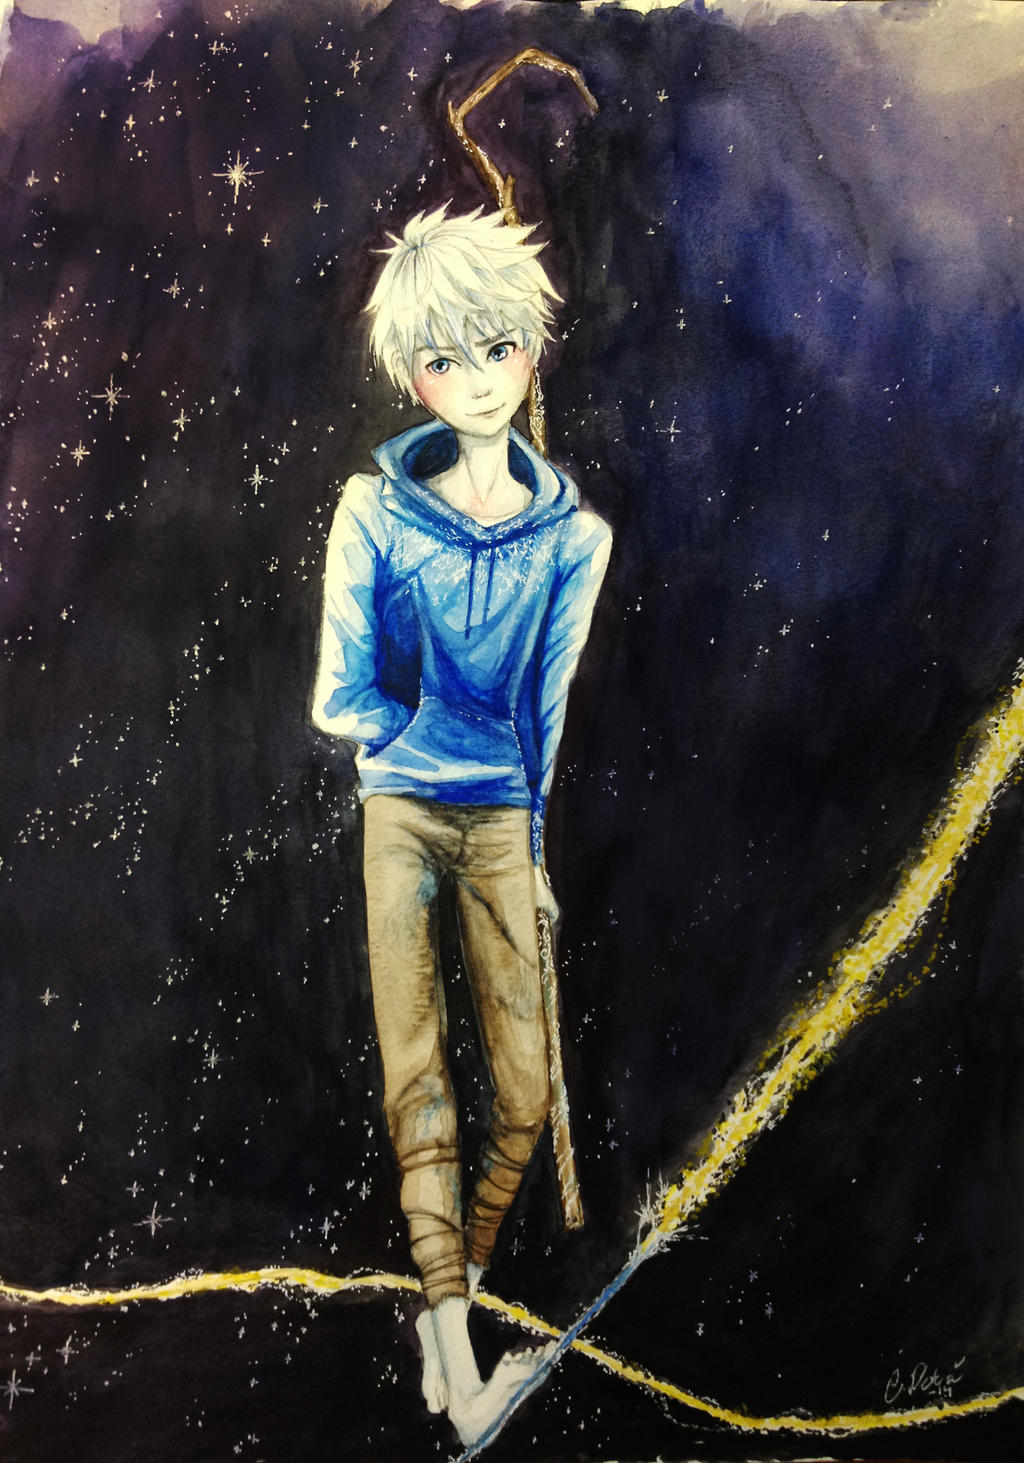 Jack Frost in watercolor by MissCake